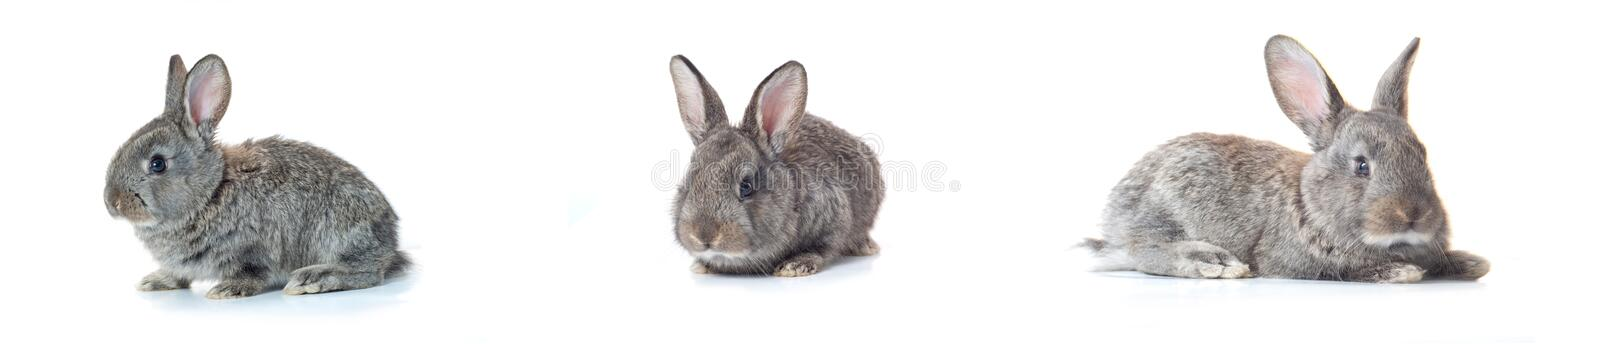 Little bunny stock images